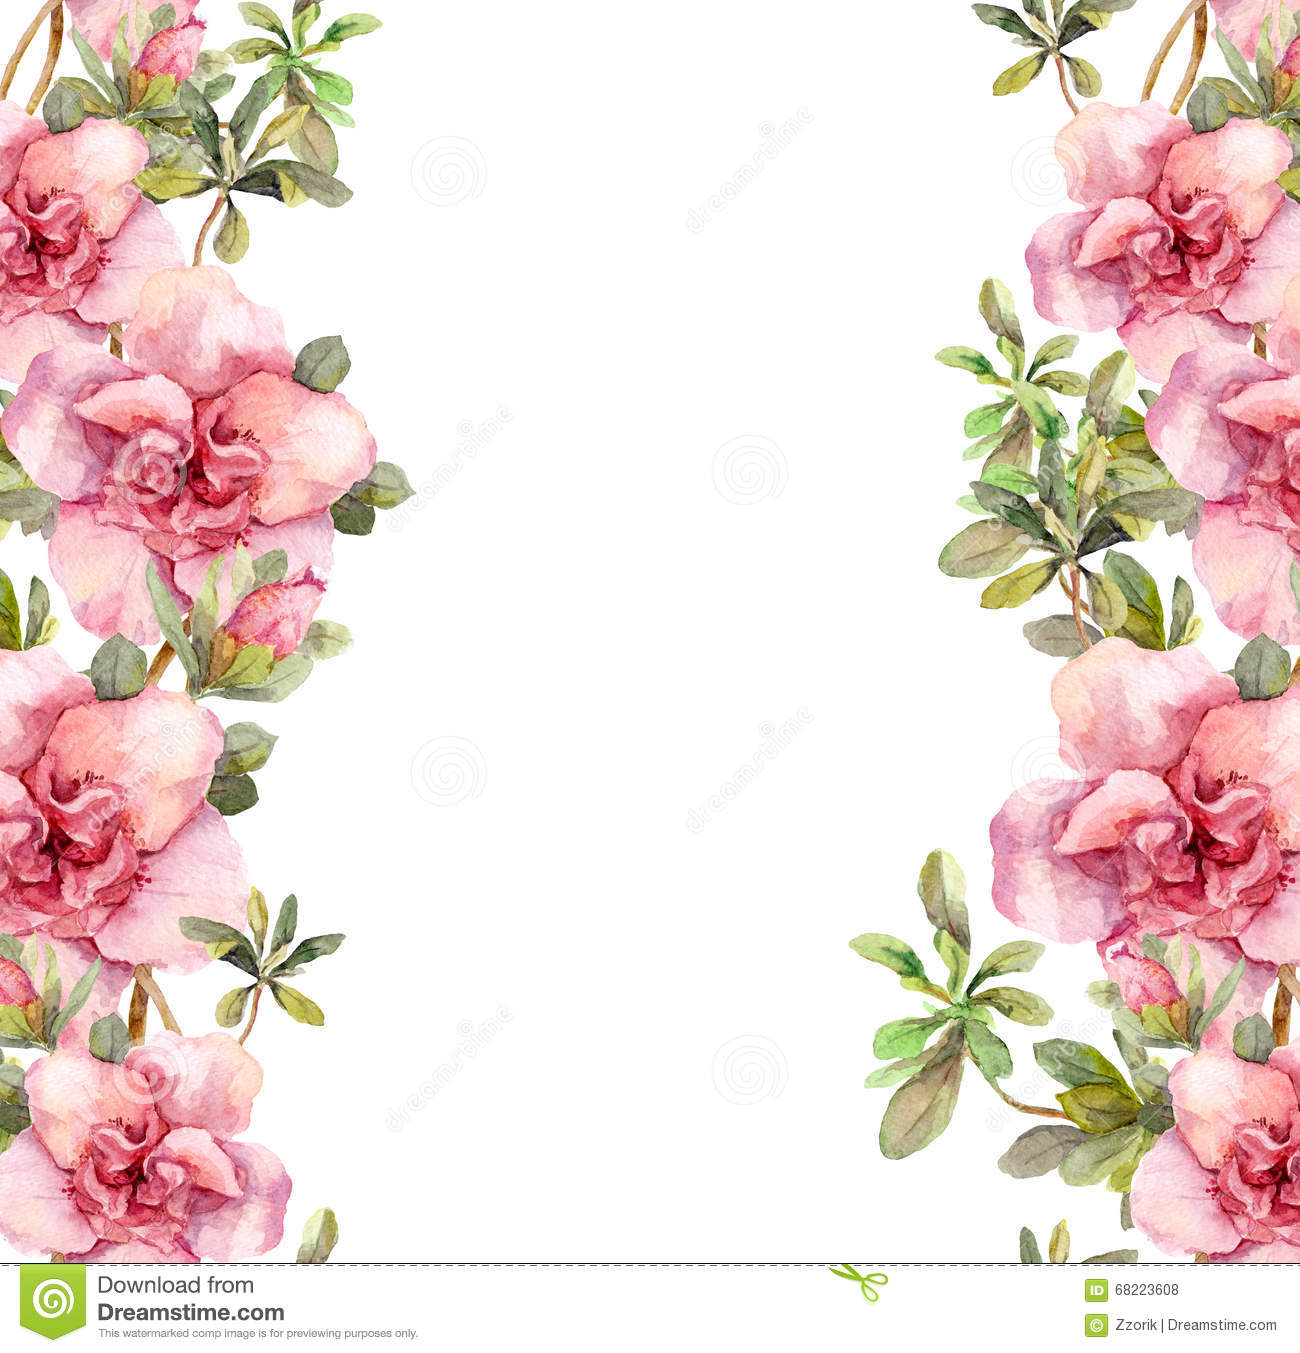 Floral Seamless Watercolor Frame Border With Pink Flowers Aquarel